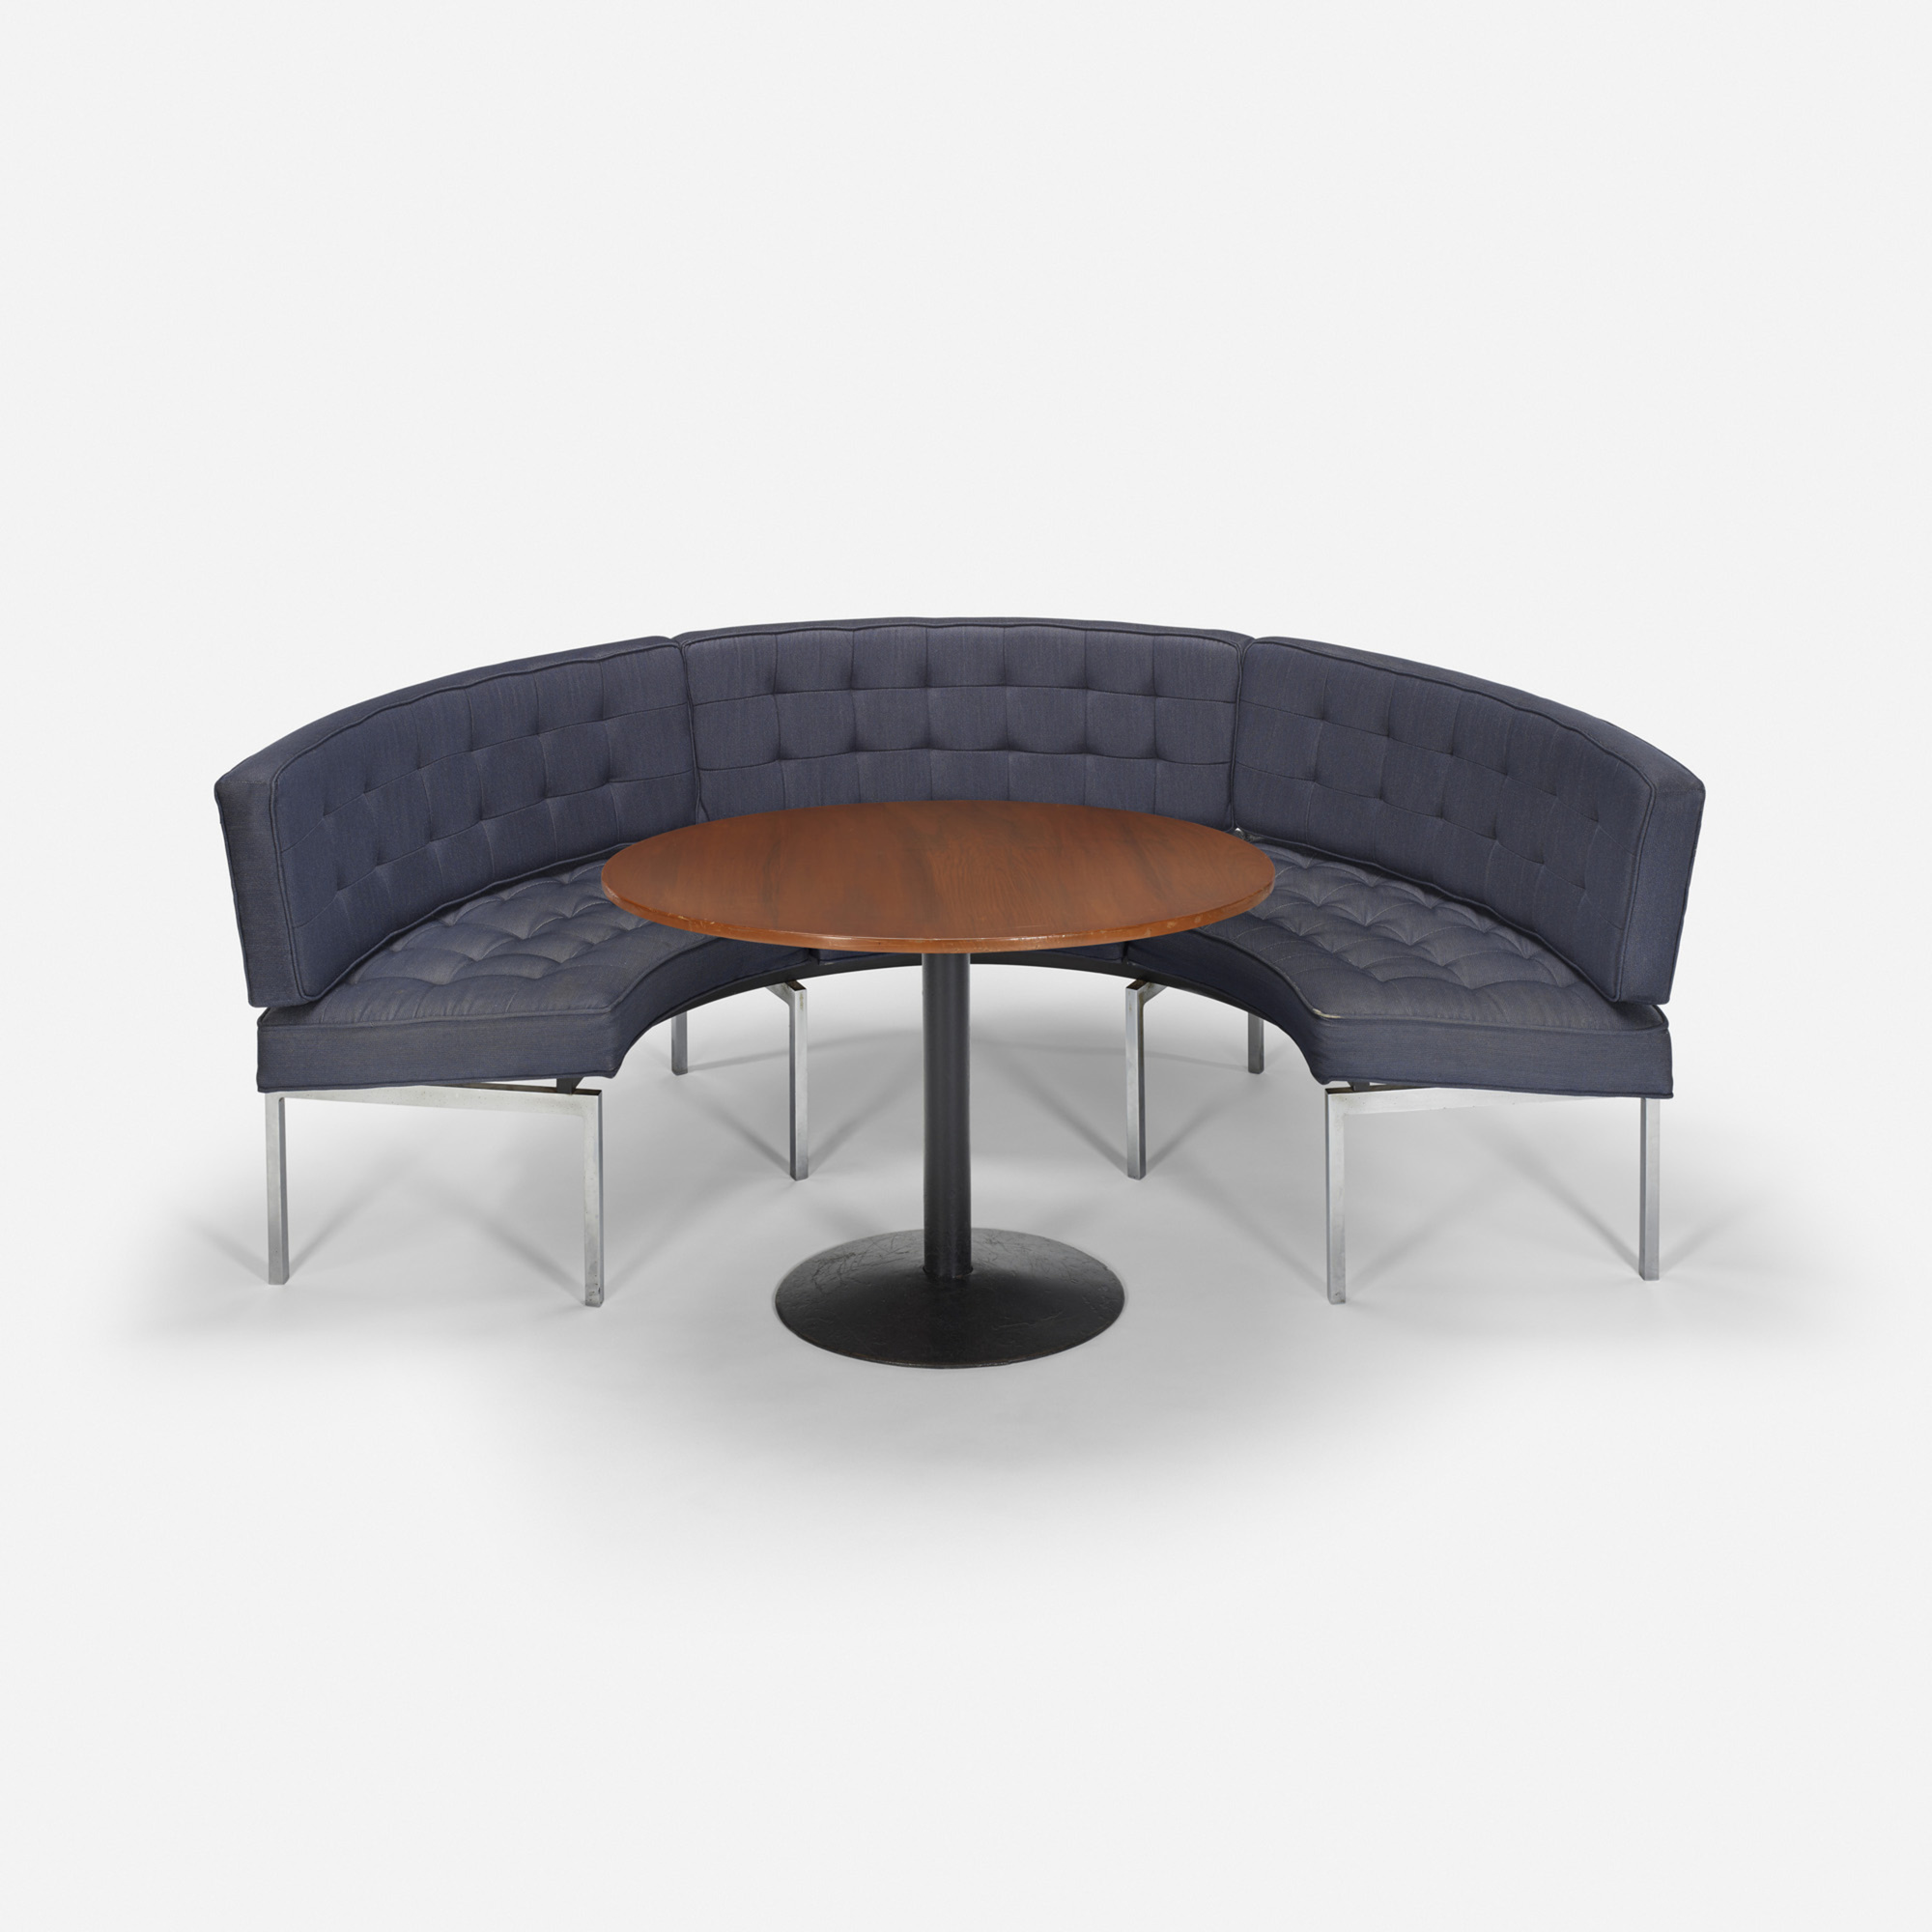 223: Philip Johnson Associates / Curved banquette and table 36 from the Grill Room (1 of 1)